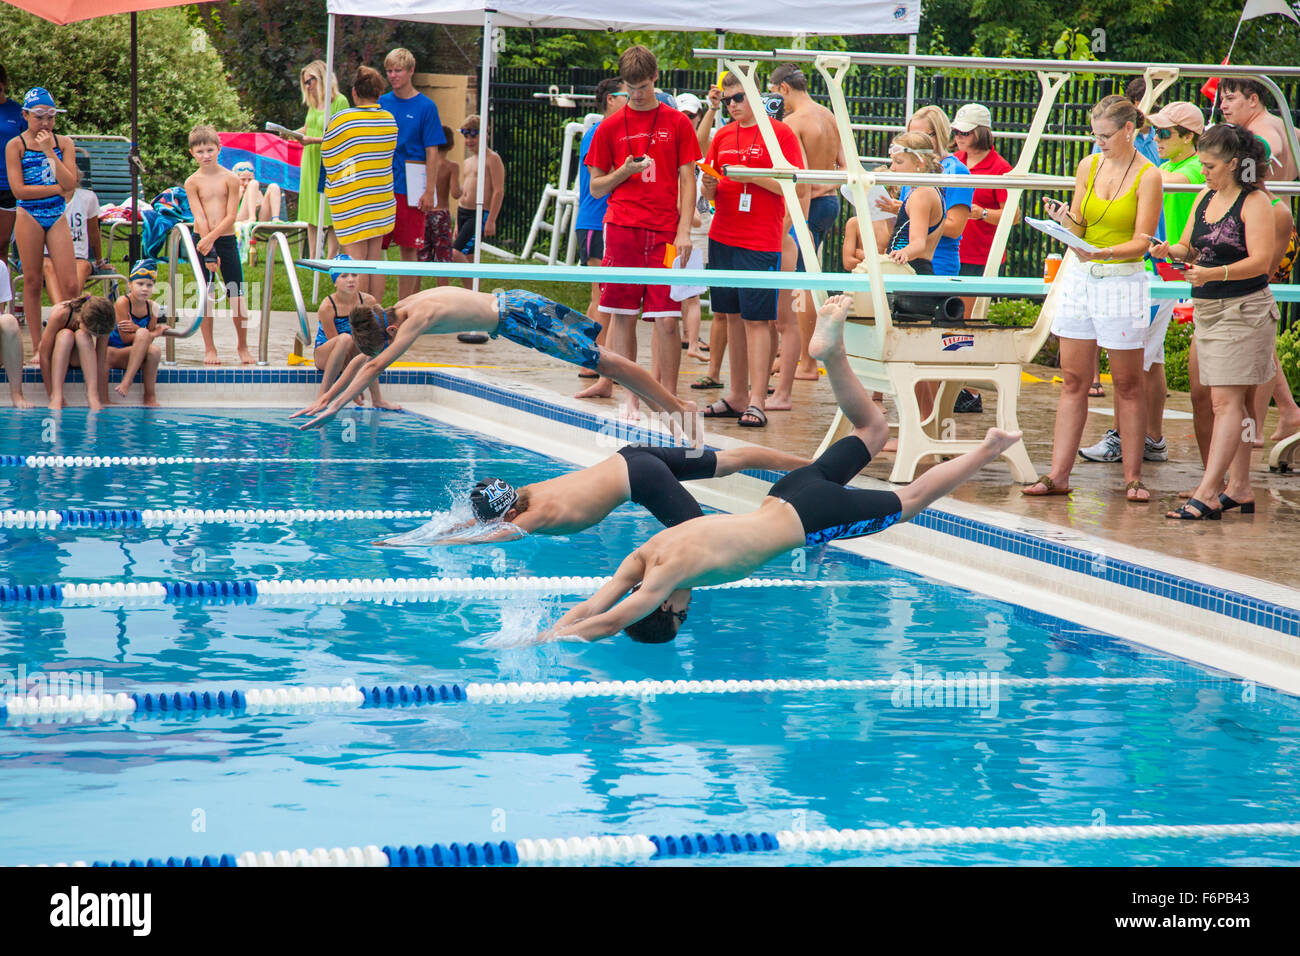 Boys age 12 diving into pool water participating in swim meet. St Paul Minnesota MN USA - Stock Image